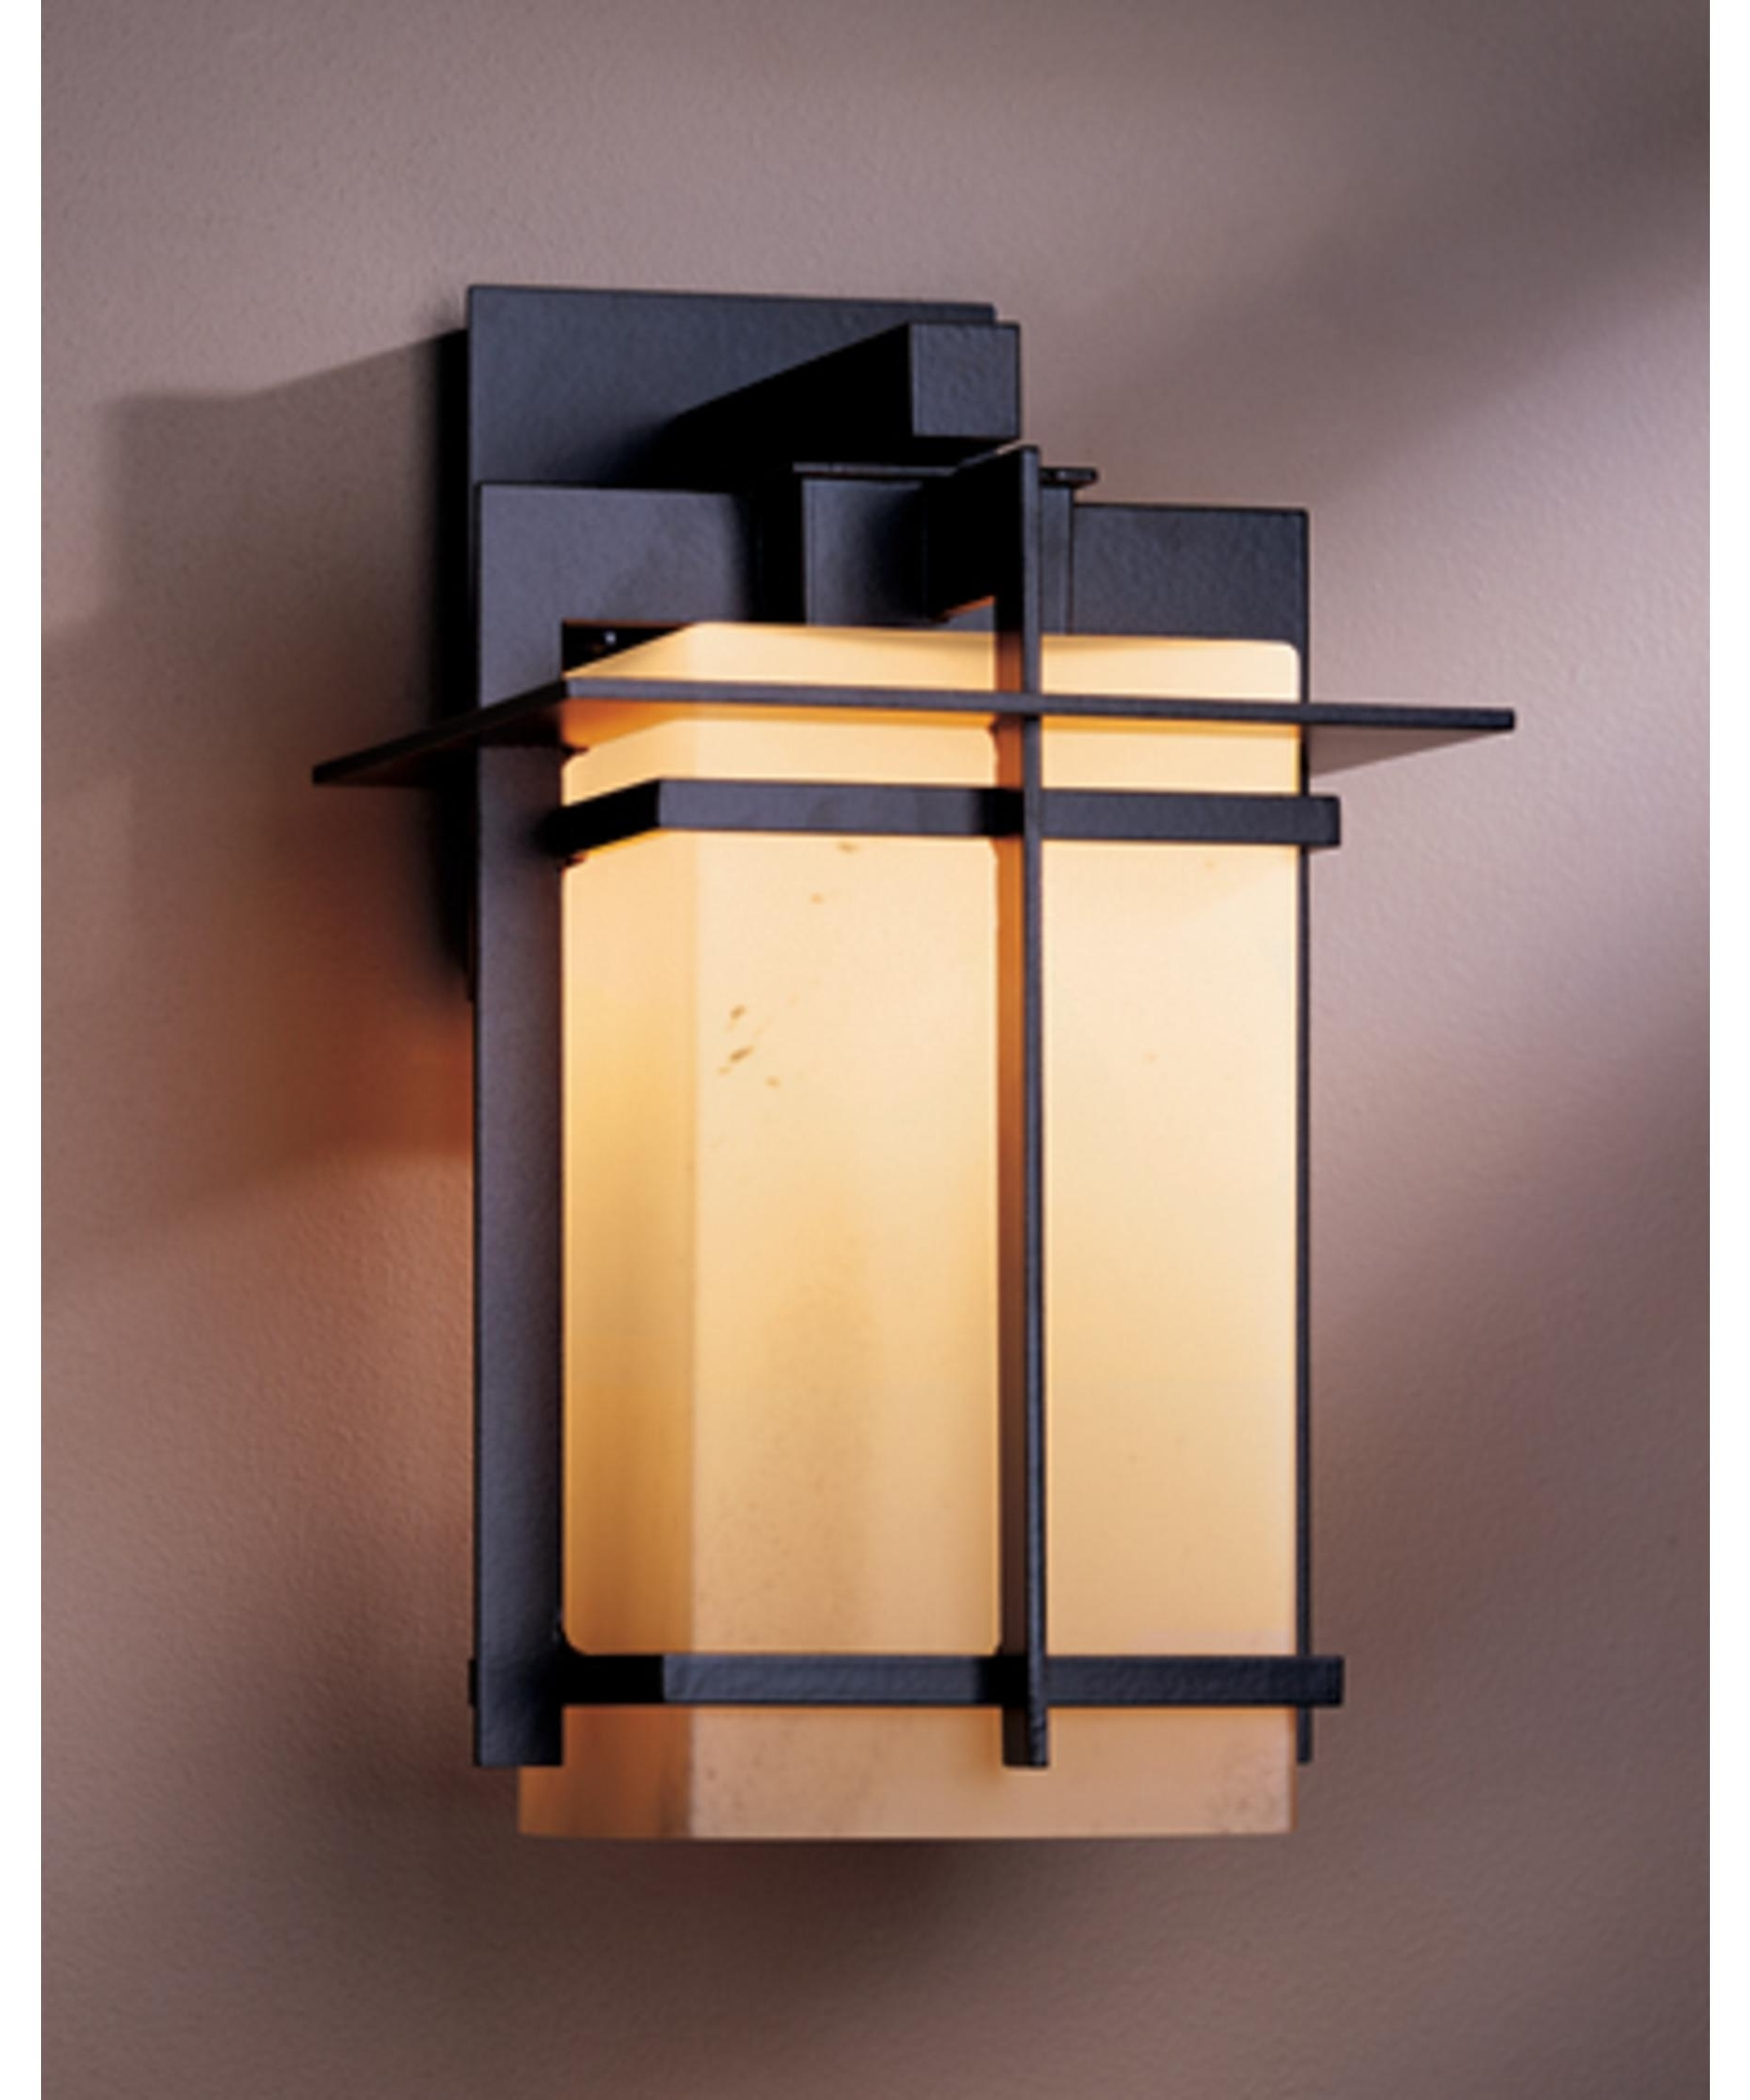 Popular Ideas: Outstanding Classic Home Depot Outdoor Lights For Exterior Pertaining To Outdoor Mounted Lanterns (View 19 of 20)